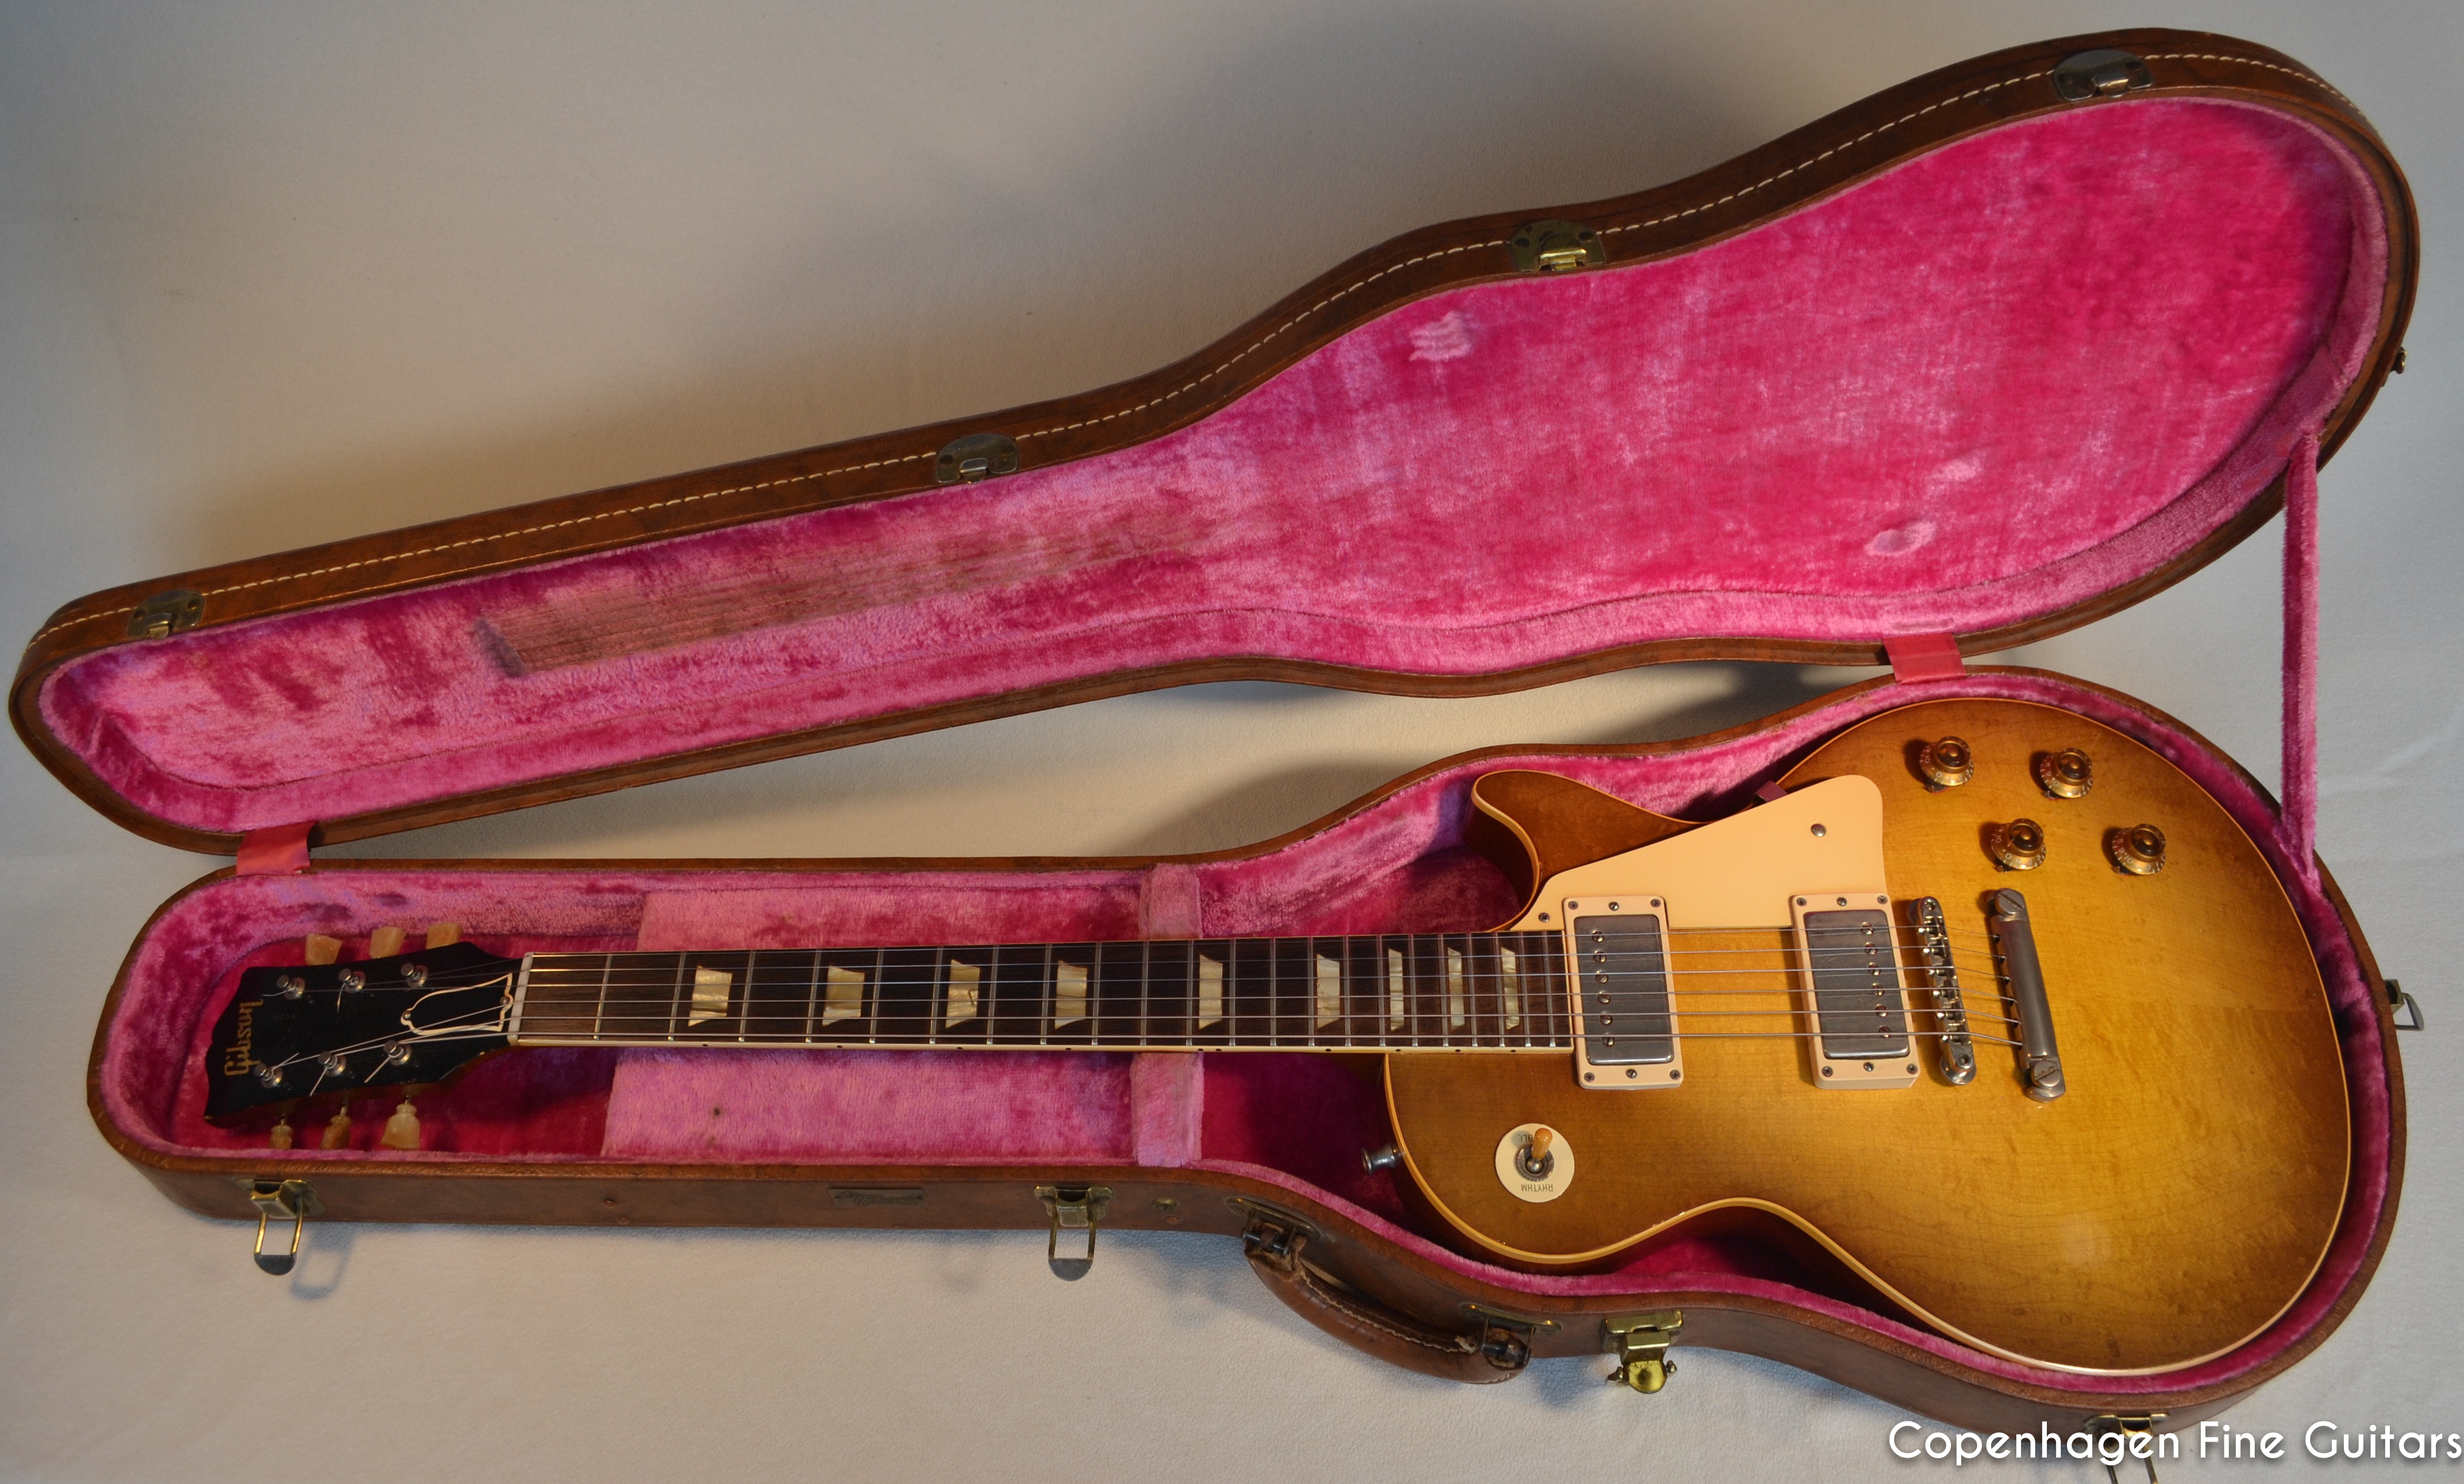 1959 Gibson Les Paul Standard Sunburst guitar for sale